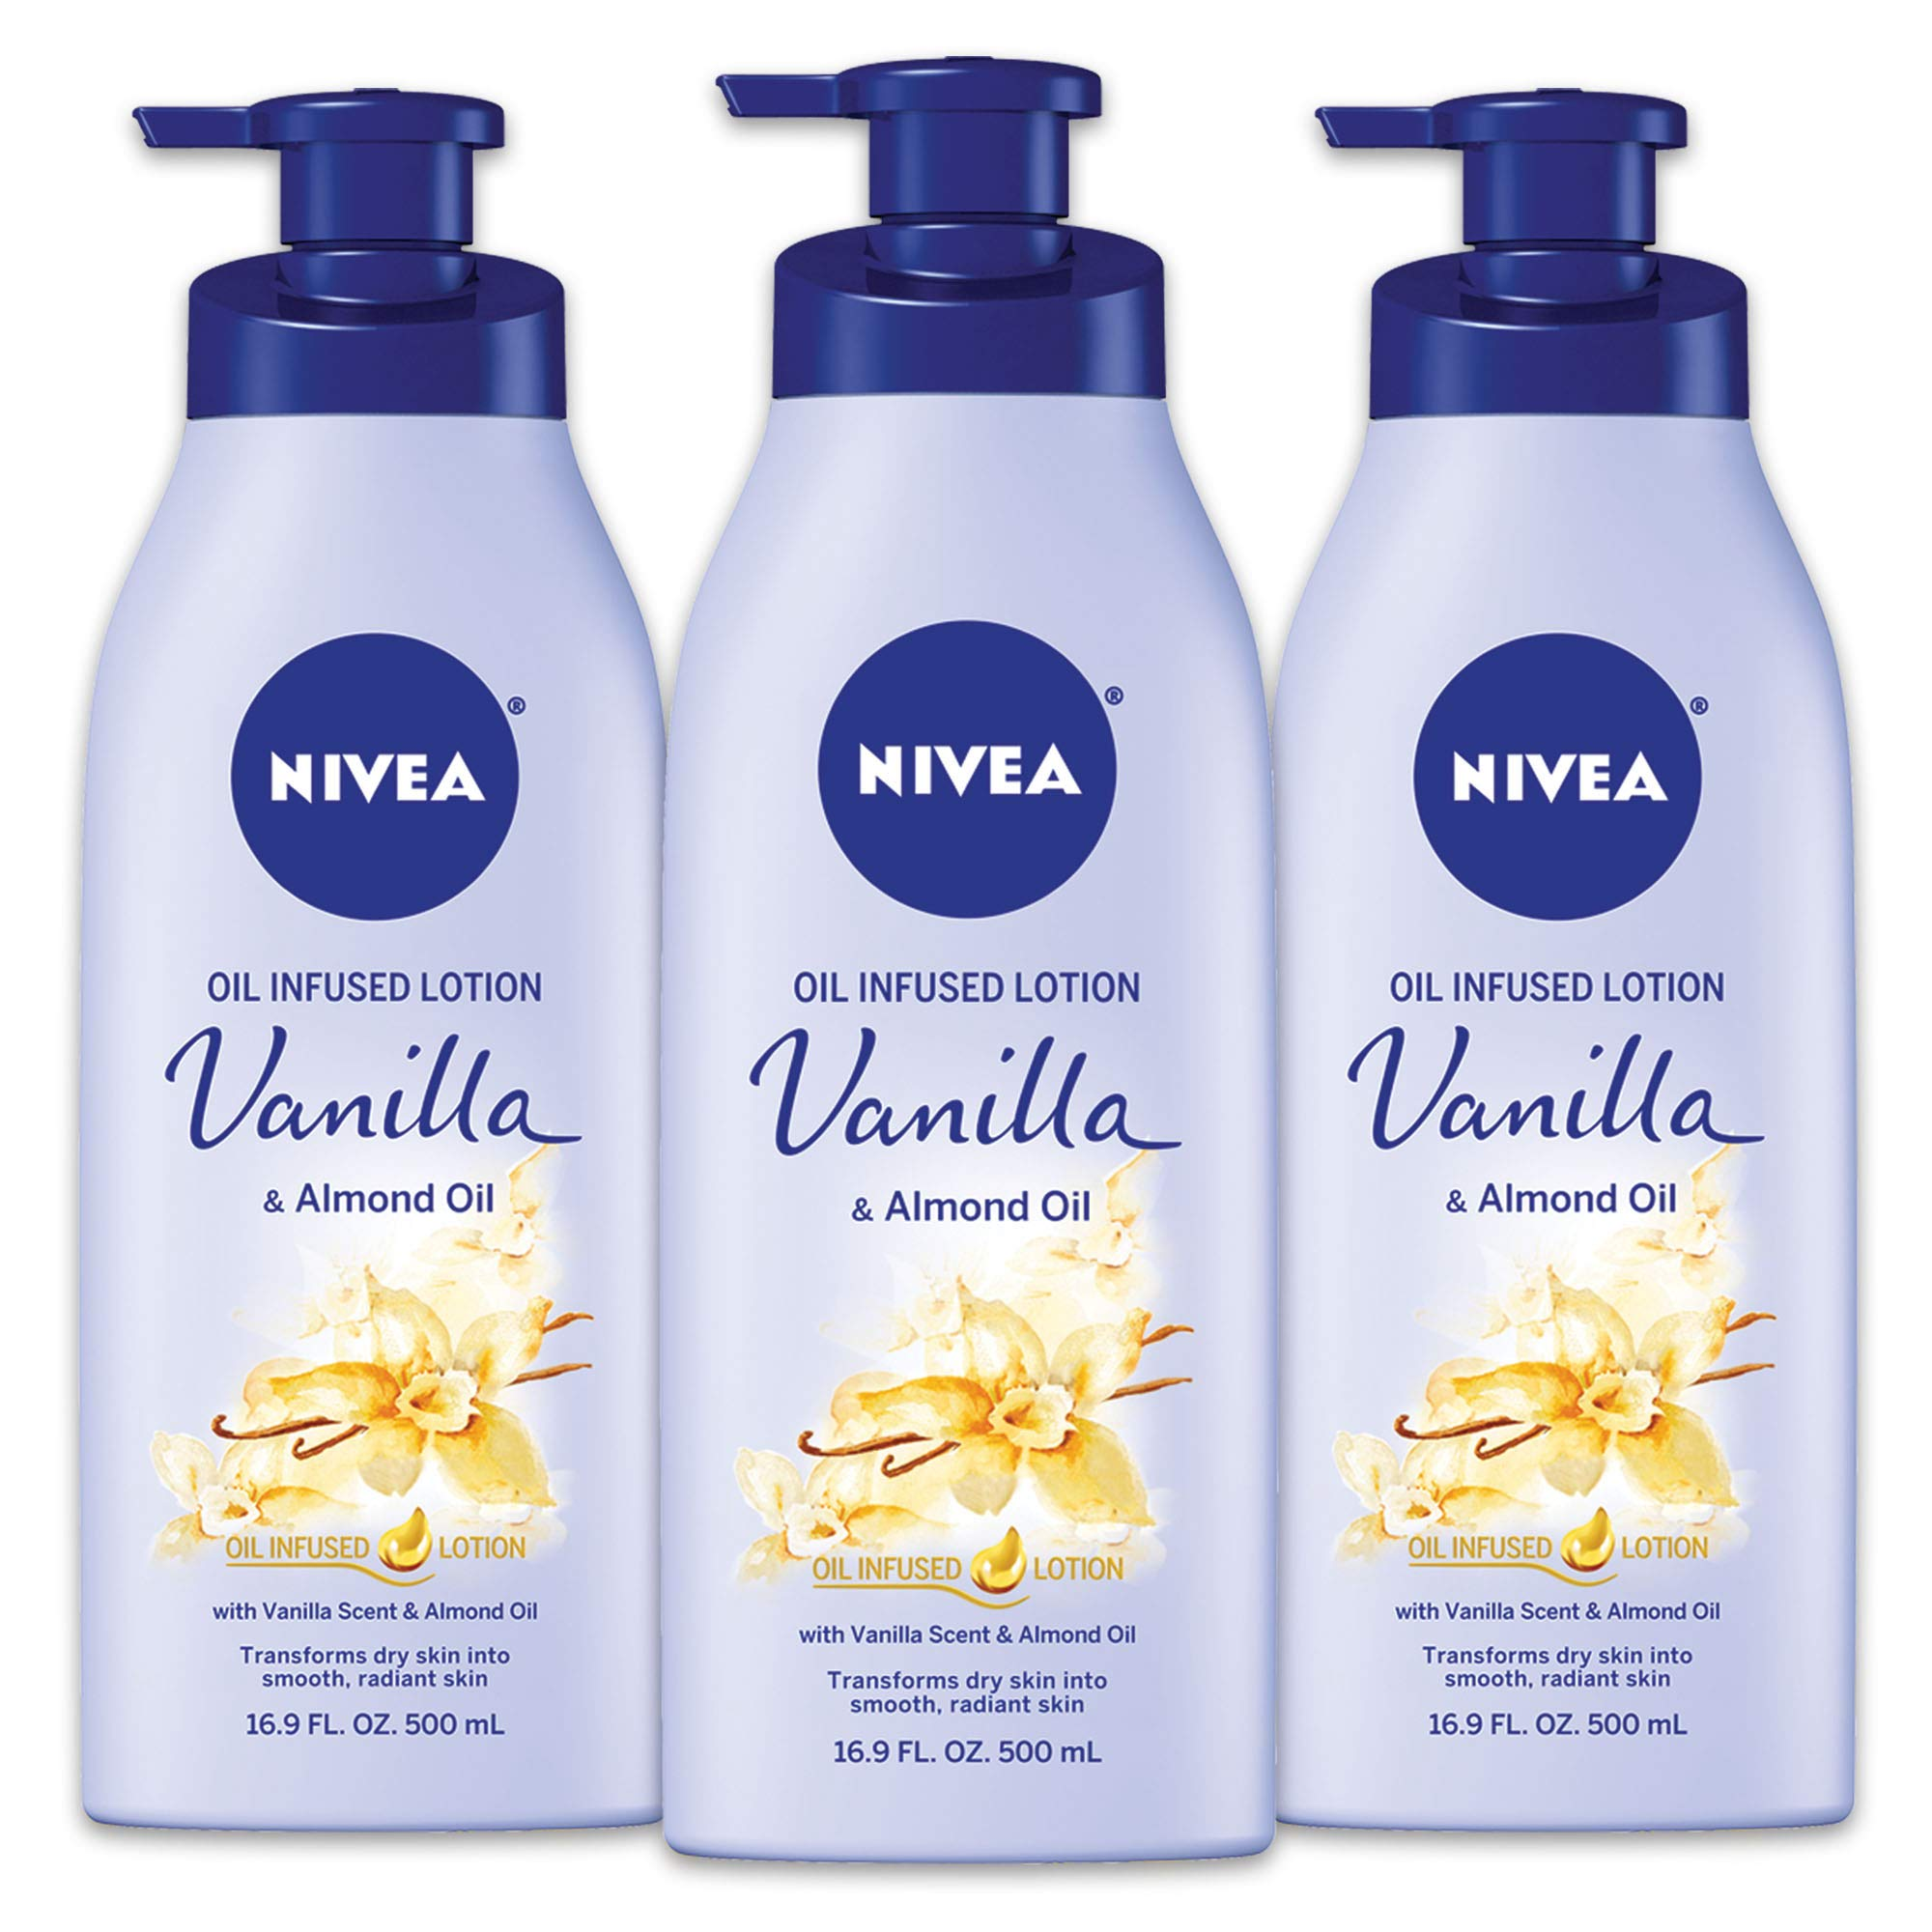 NIVEA Vanilla and Almond Oil Infused Body Lotion - Fast Absorbing 24 Hour Moisture for Dry Skin - 16.9 Oz. (Pack of 3) by Nivea